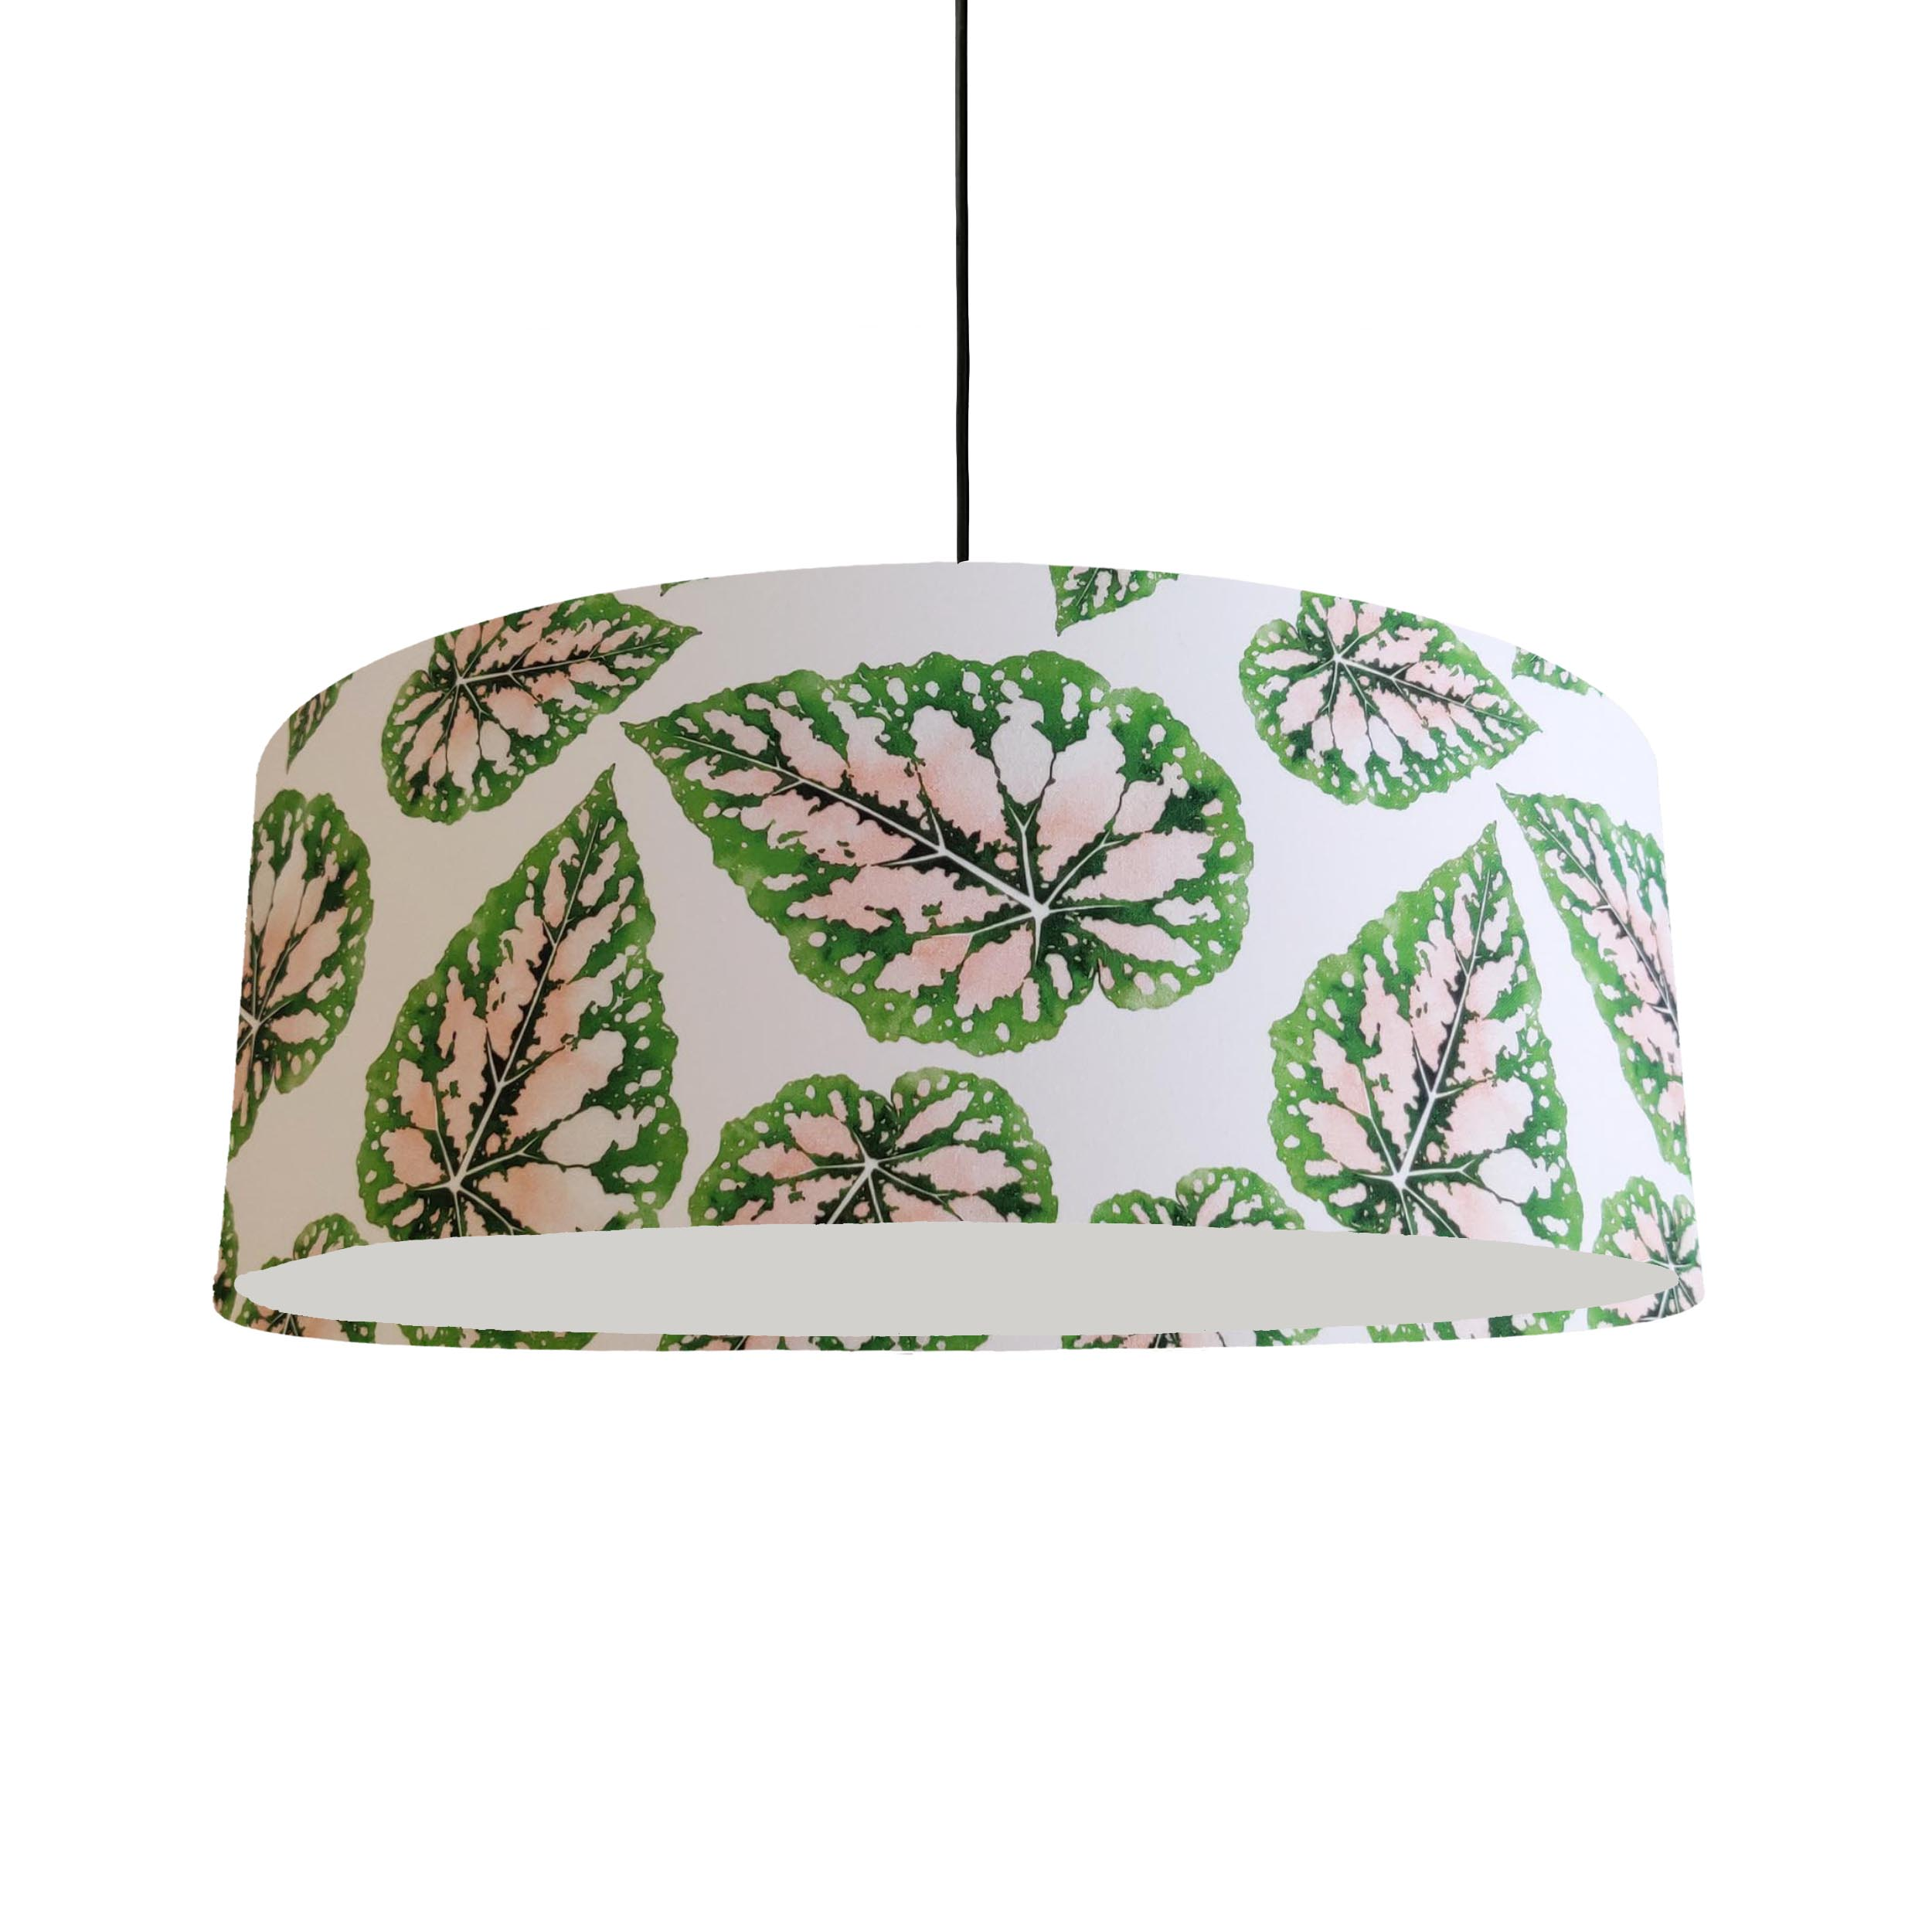 Extra Large Botanical Lampshade in a Green and Pink Leaves Fabric